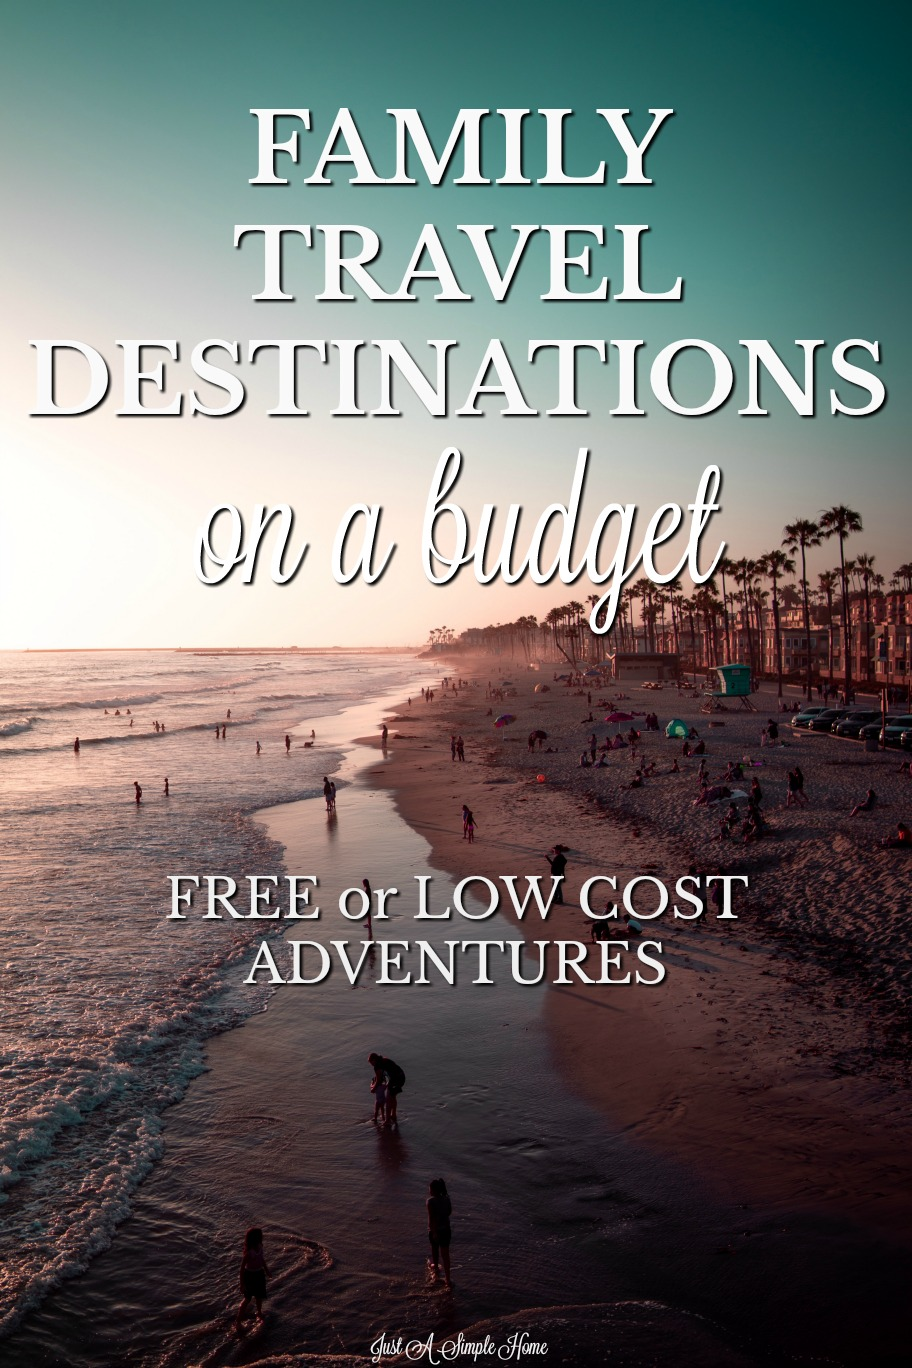 Top Family Travel Destinations on a Budget! You want to travel, but are on a budget. Come check out these places where all the adventures are free or very low cost! #familytravel #vacation #travelblogger #familytrip #newengland #daytrip #budgetgetaway